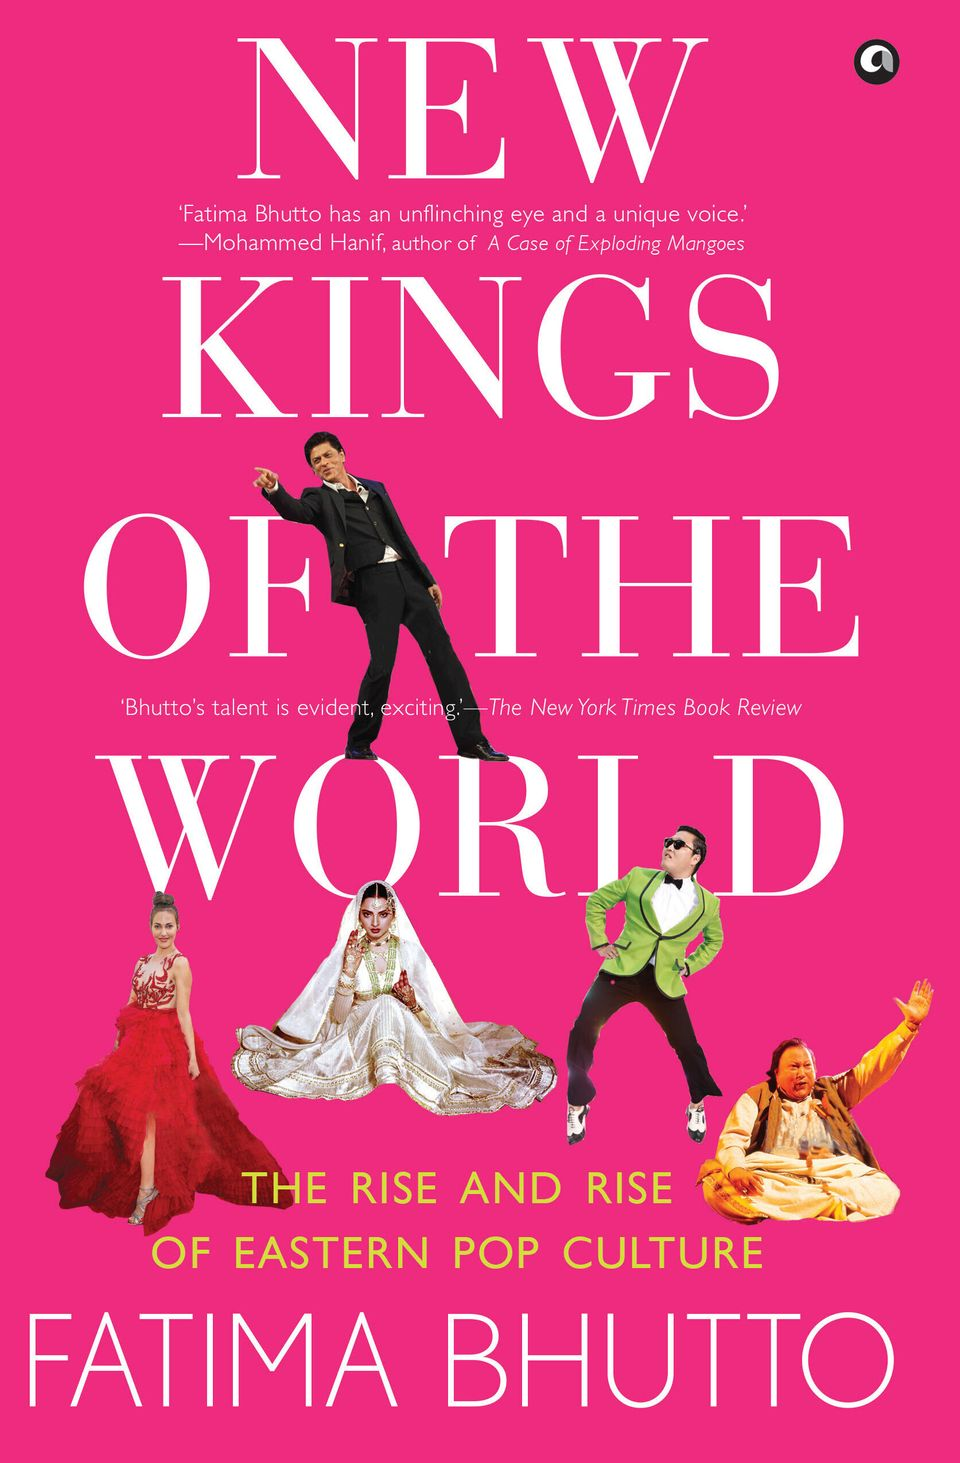 New Kings Of The World by Fatima